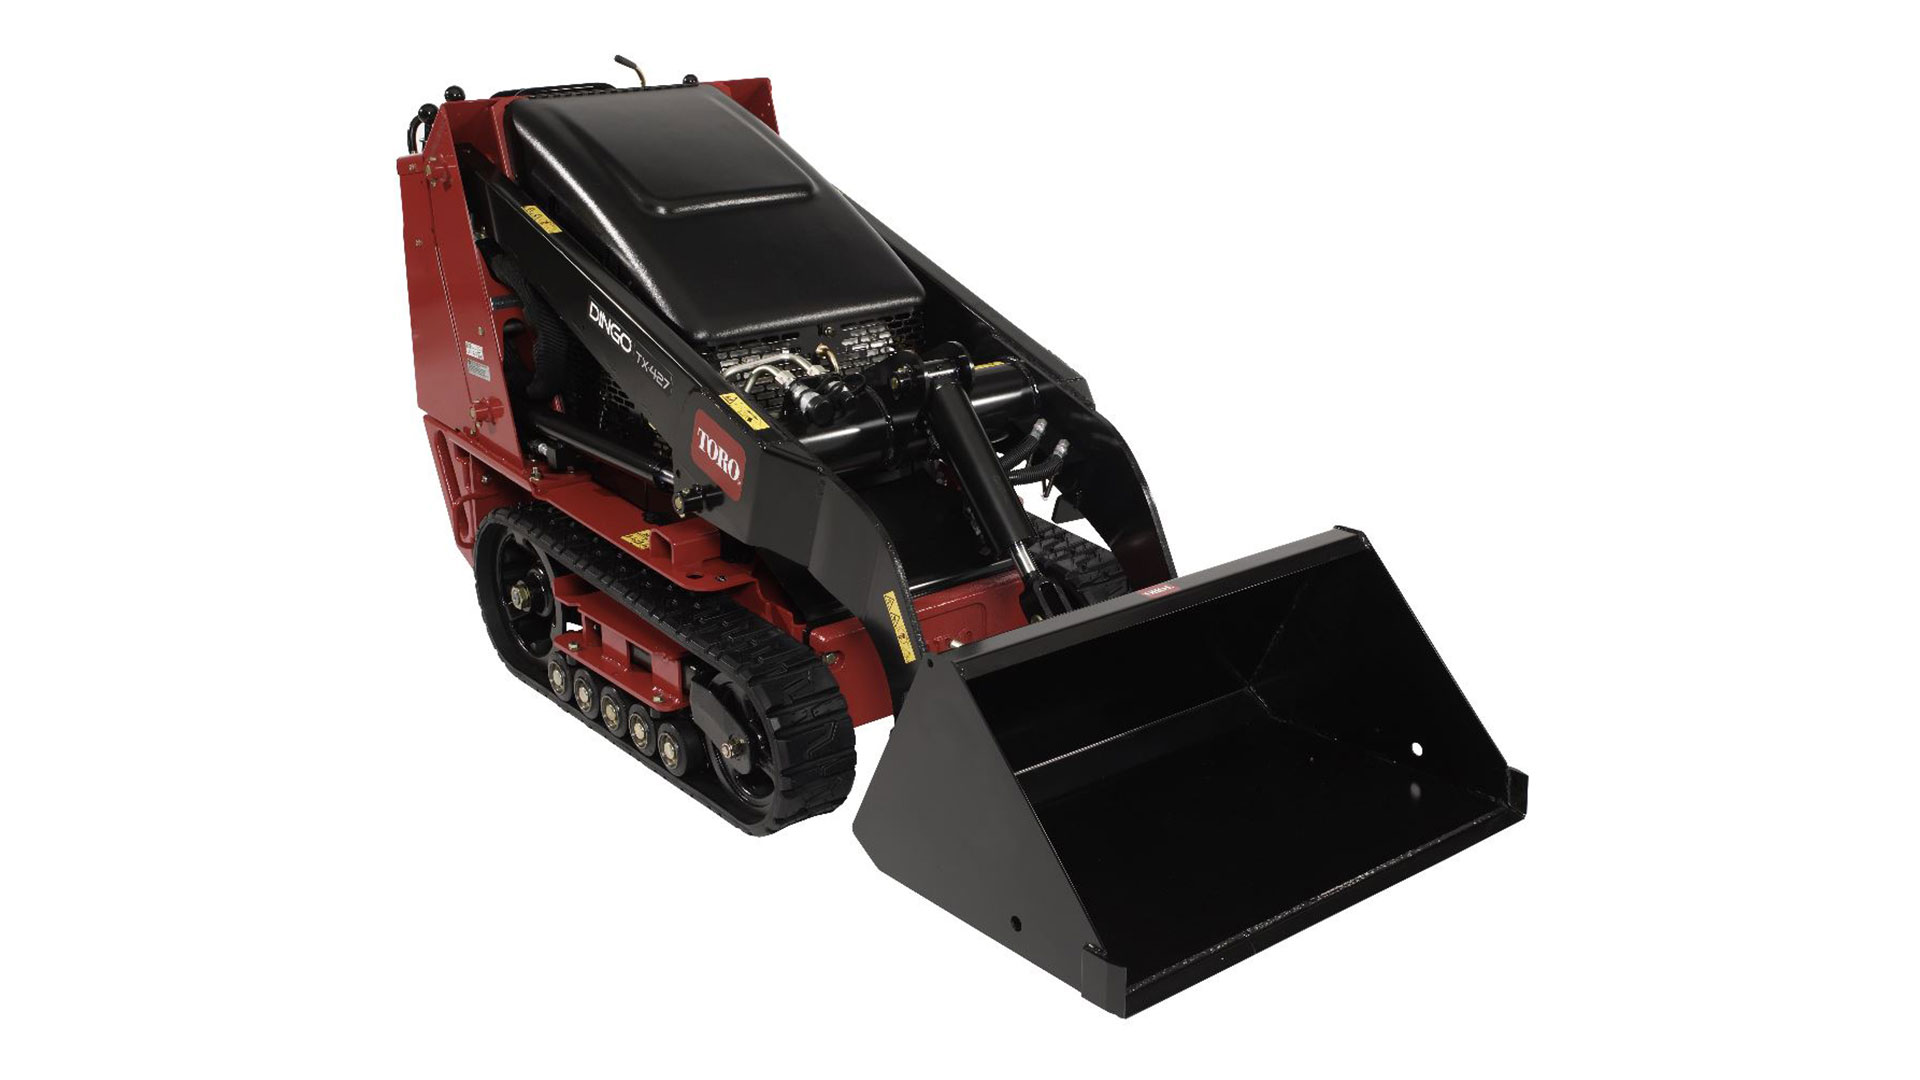 Mini Skid Steer, Compact Utility Loader Rentals | The Home